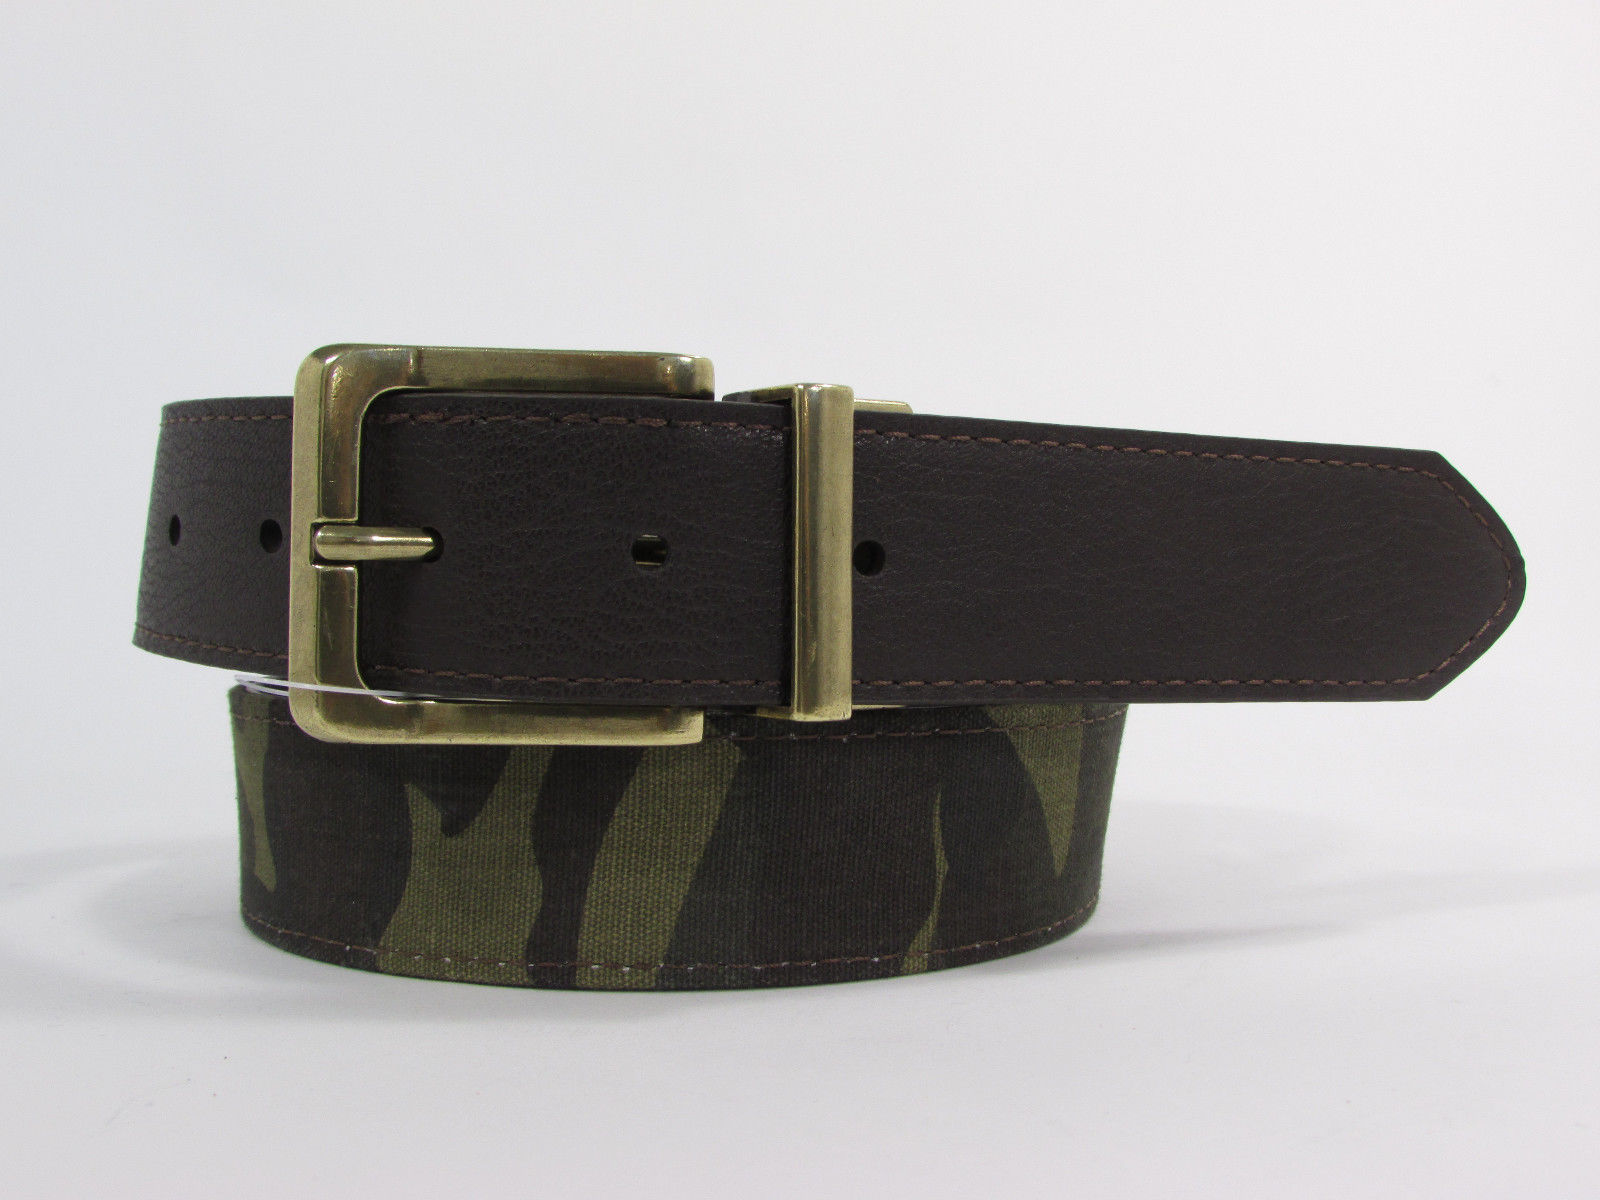 Shop Banana Republic Men's Accessories - Belts at up to 70% off! Get the lowest price on your favorite brands at Poshmark. Poshmark makes shopping fun, affordable & easy!